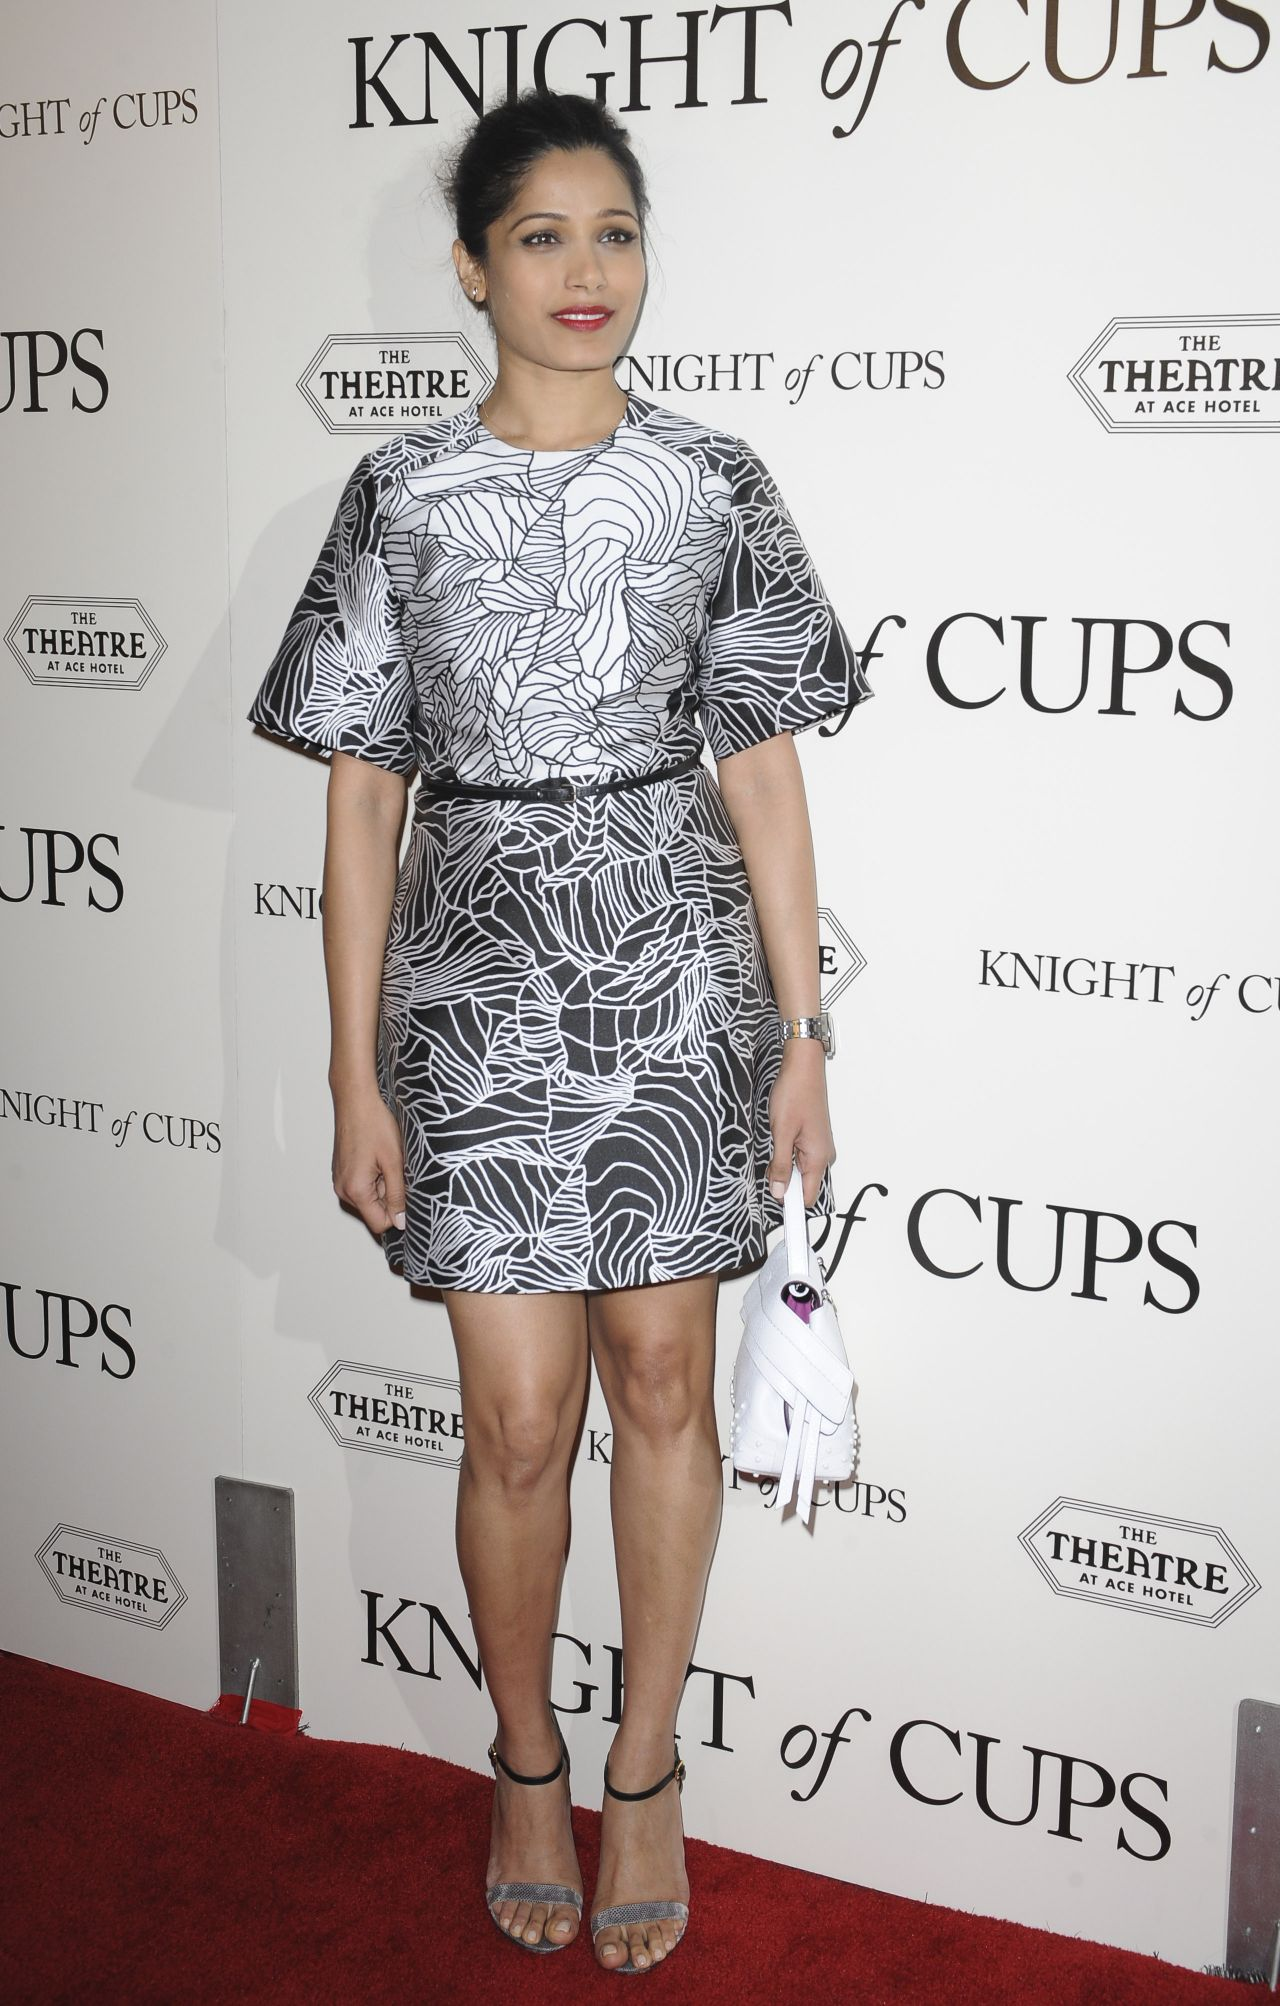 Freida Pinto at the premier of Knights of Cups